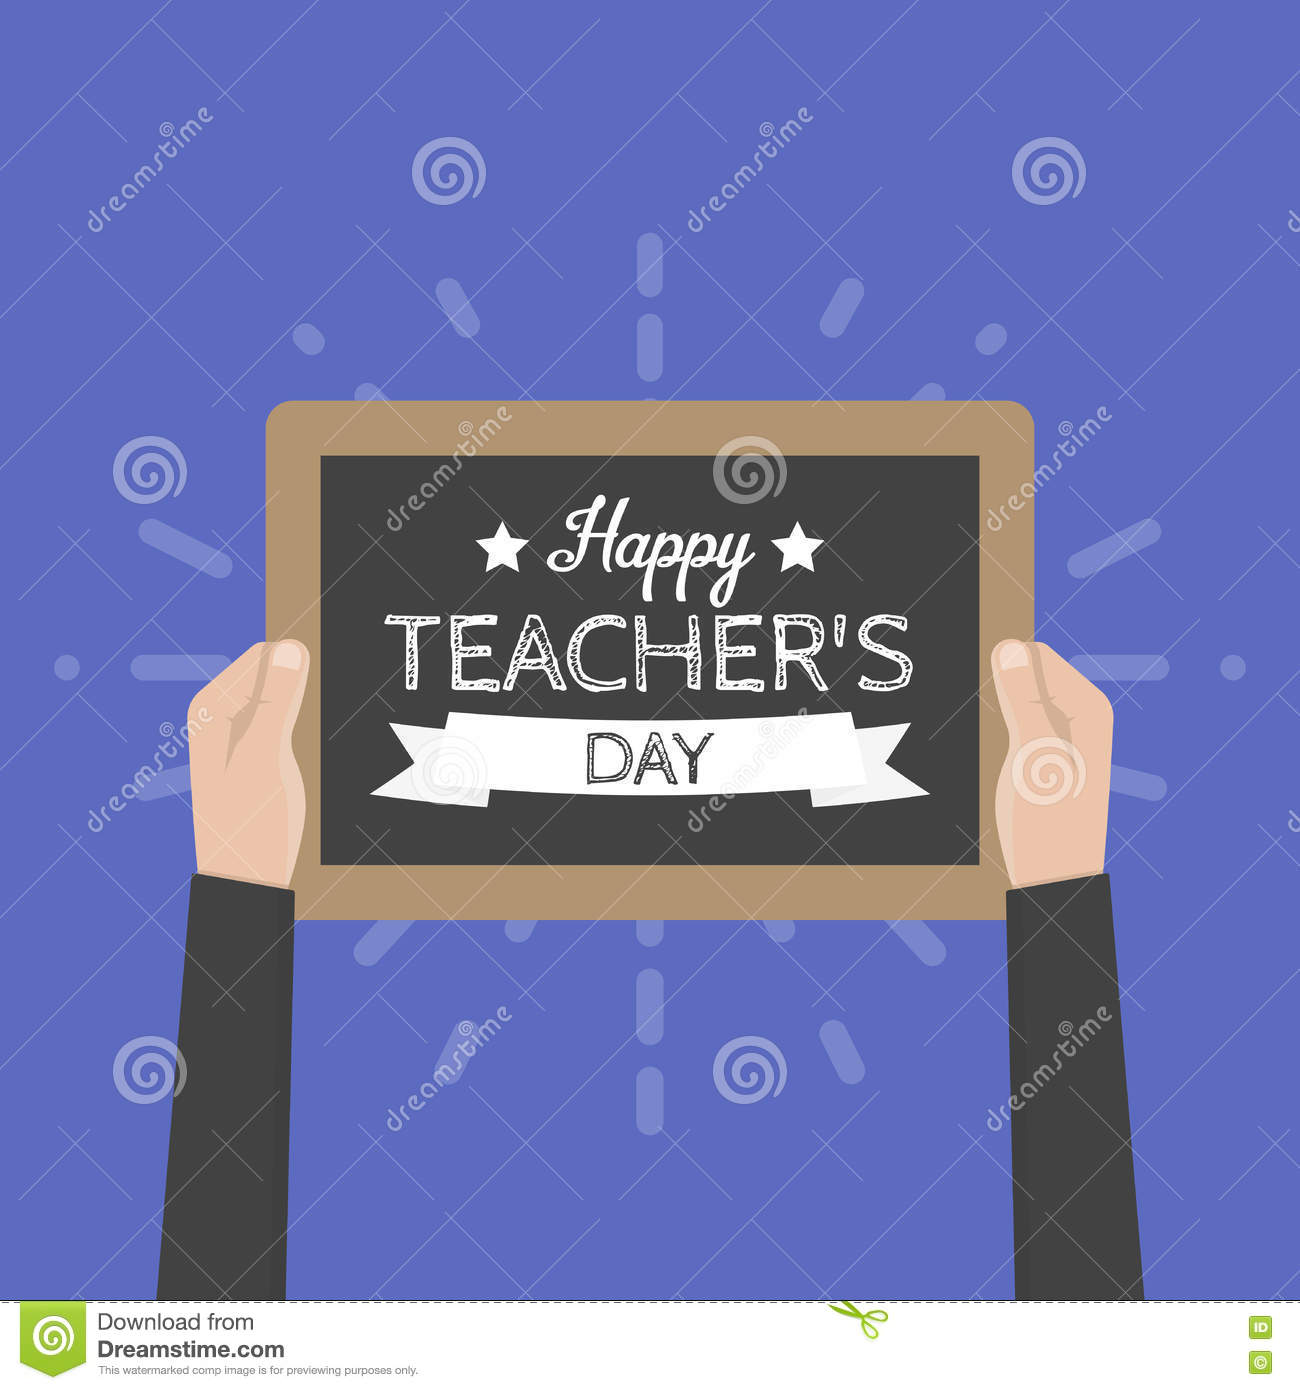 Happy teachers day greeting card vector illustration stock vector happy teachers day greeting card vector illustration kristyandbryce Image collections